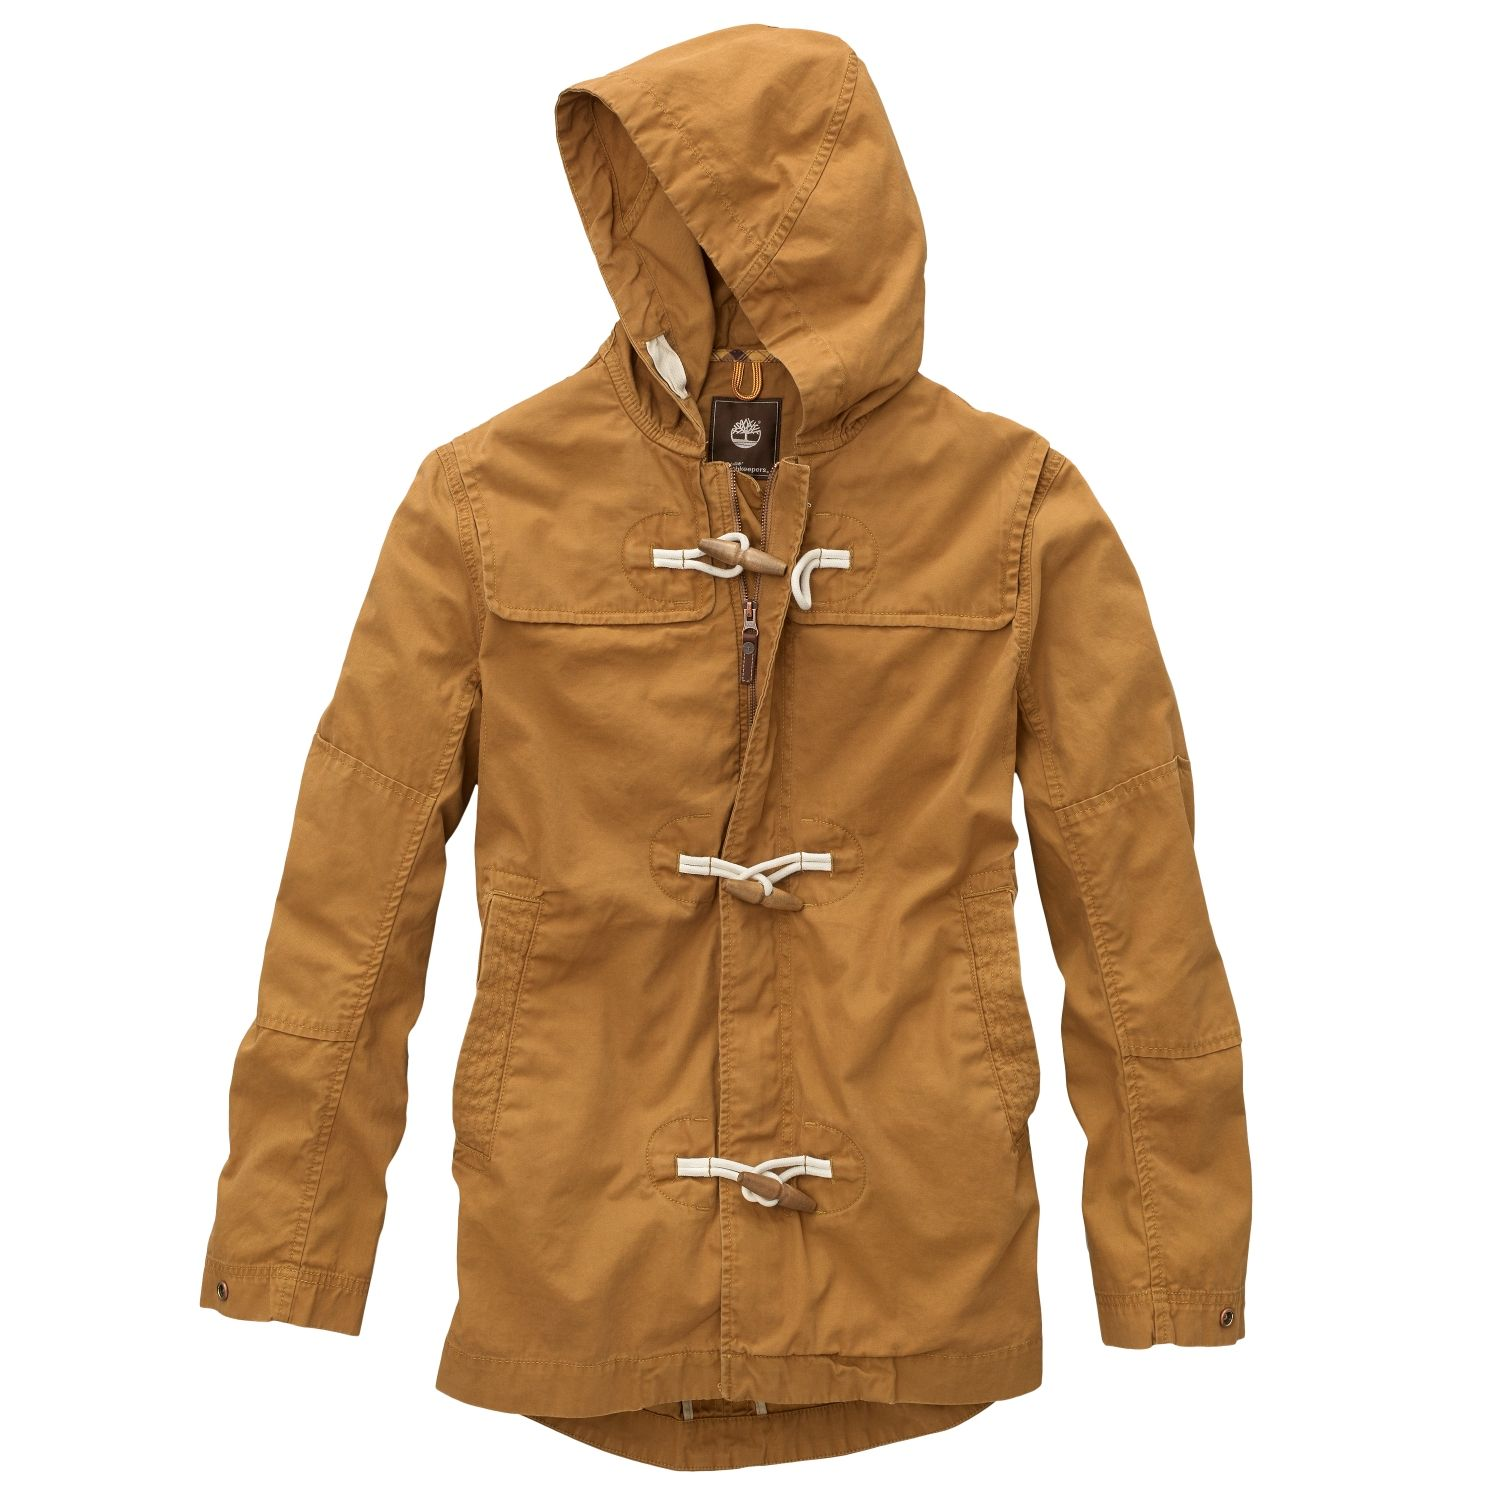 Men's Earthkeepers® Duffle Parka Jacket | Clothing I Love ...